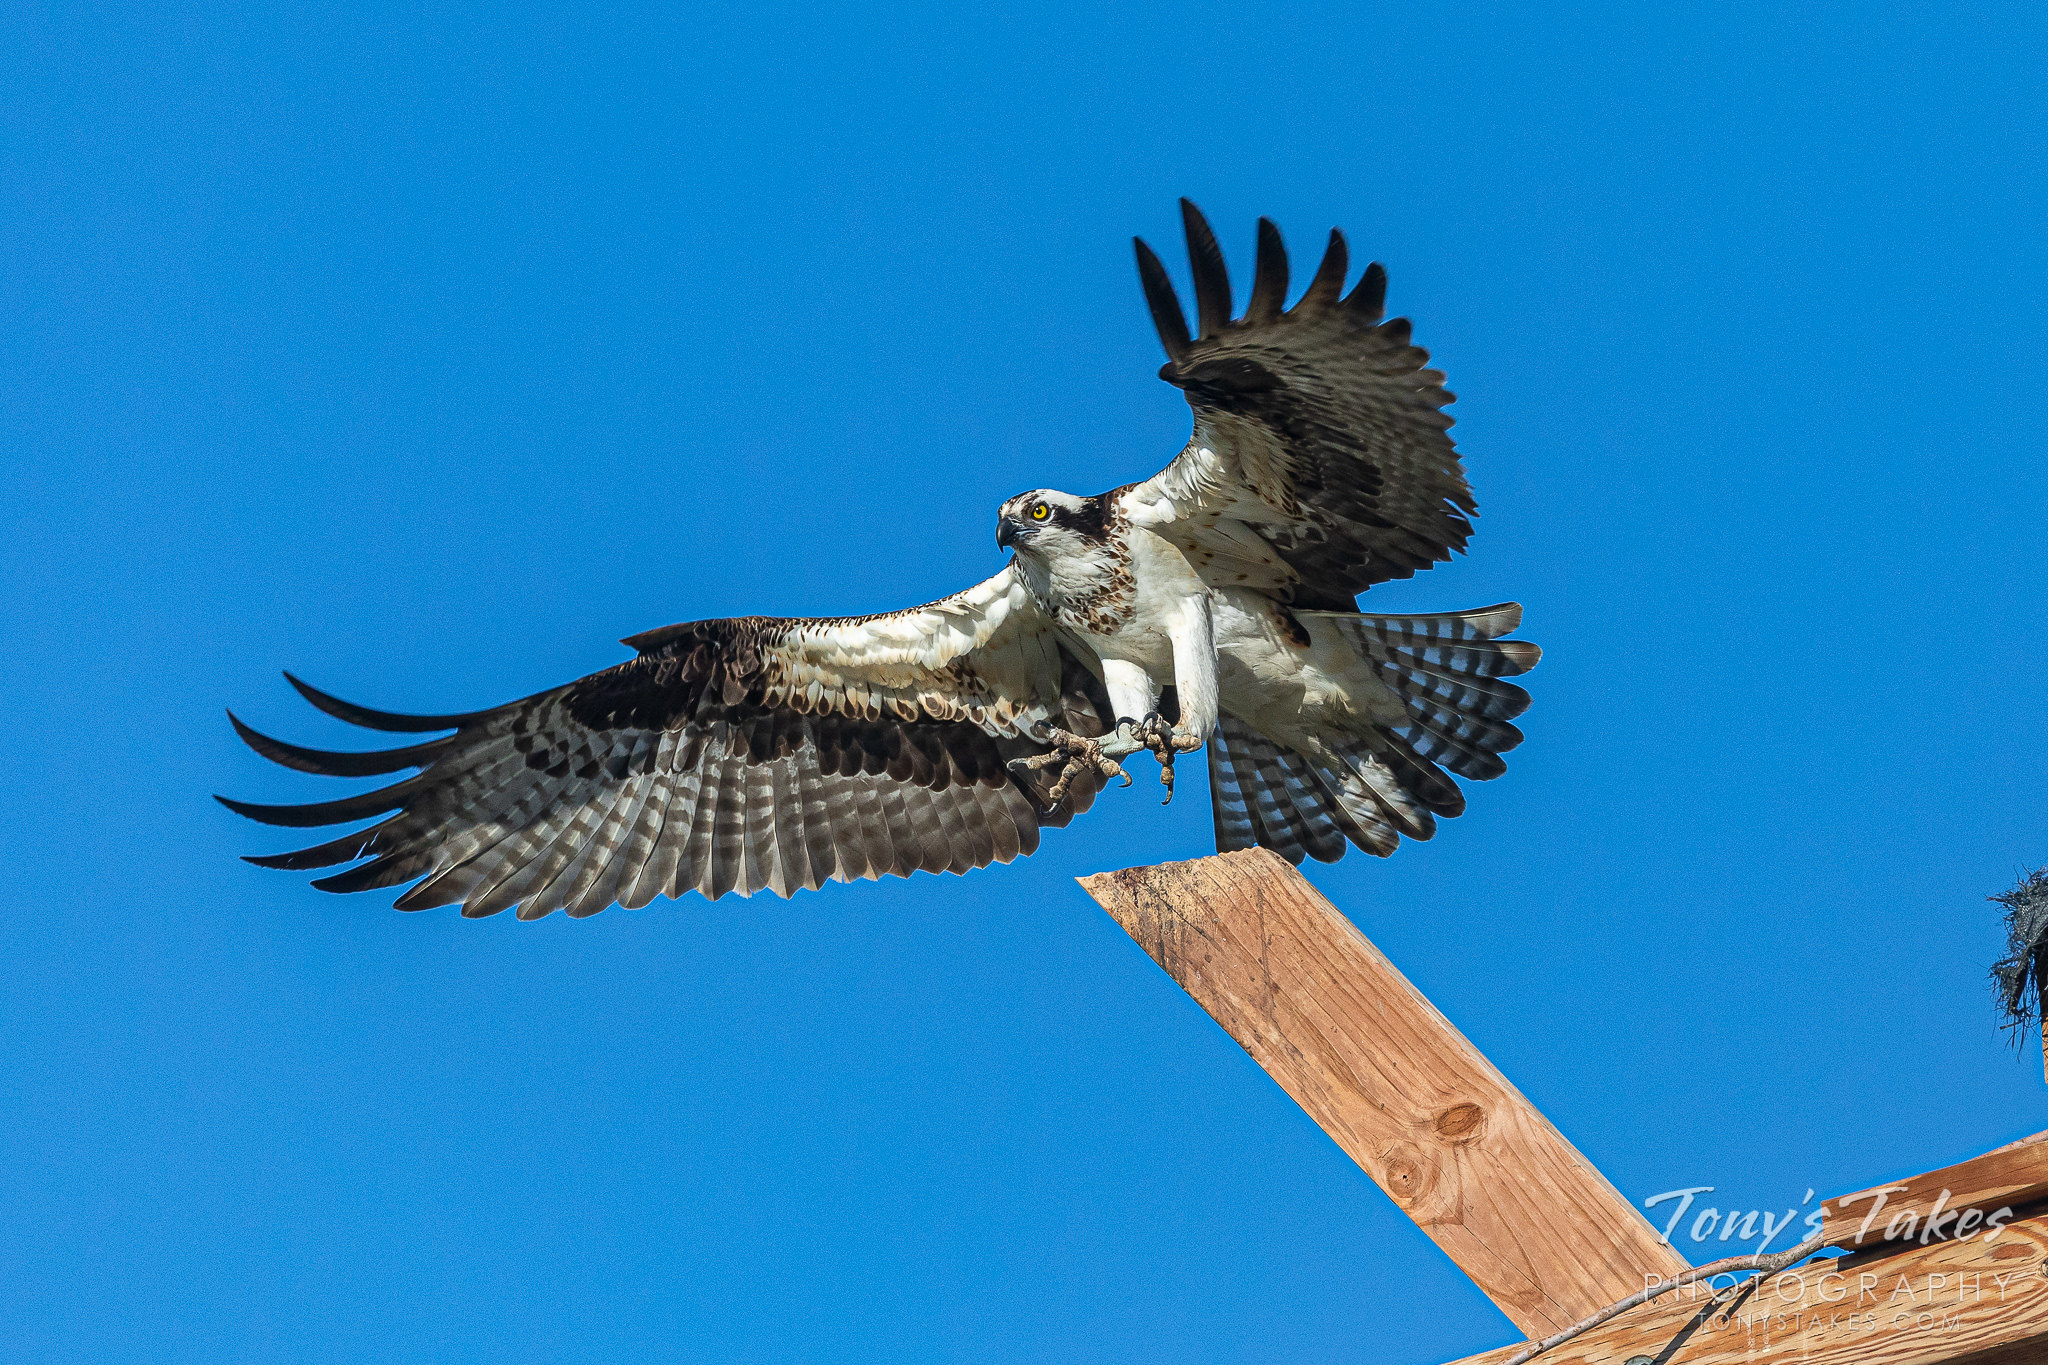 Female osprey performs a touch-and-go